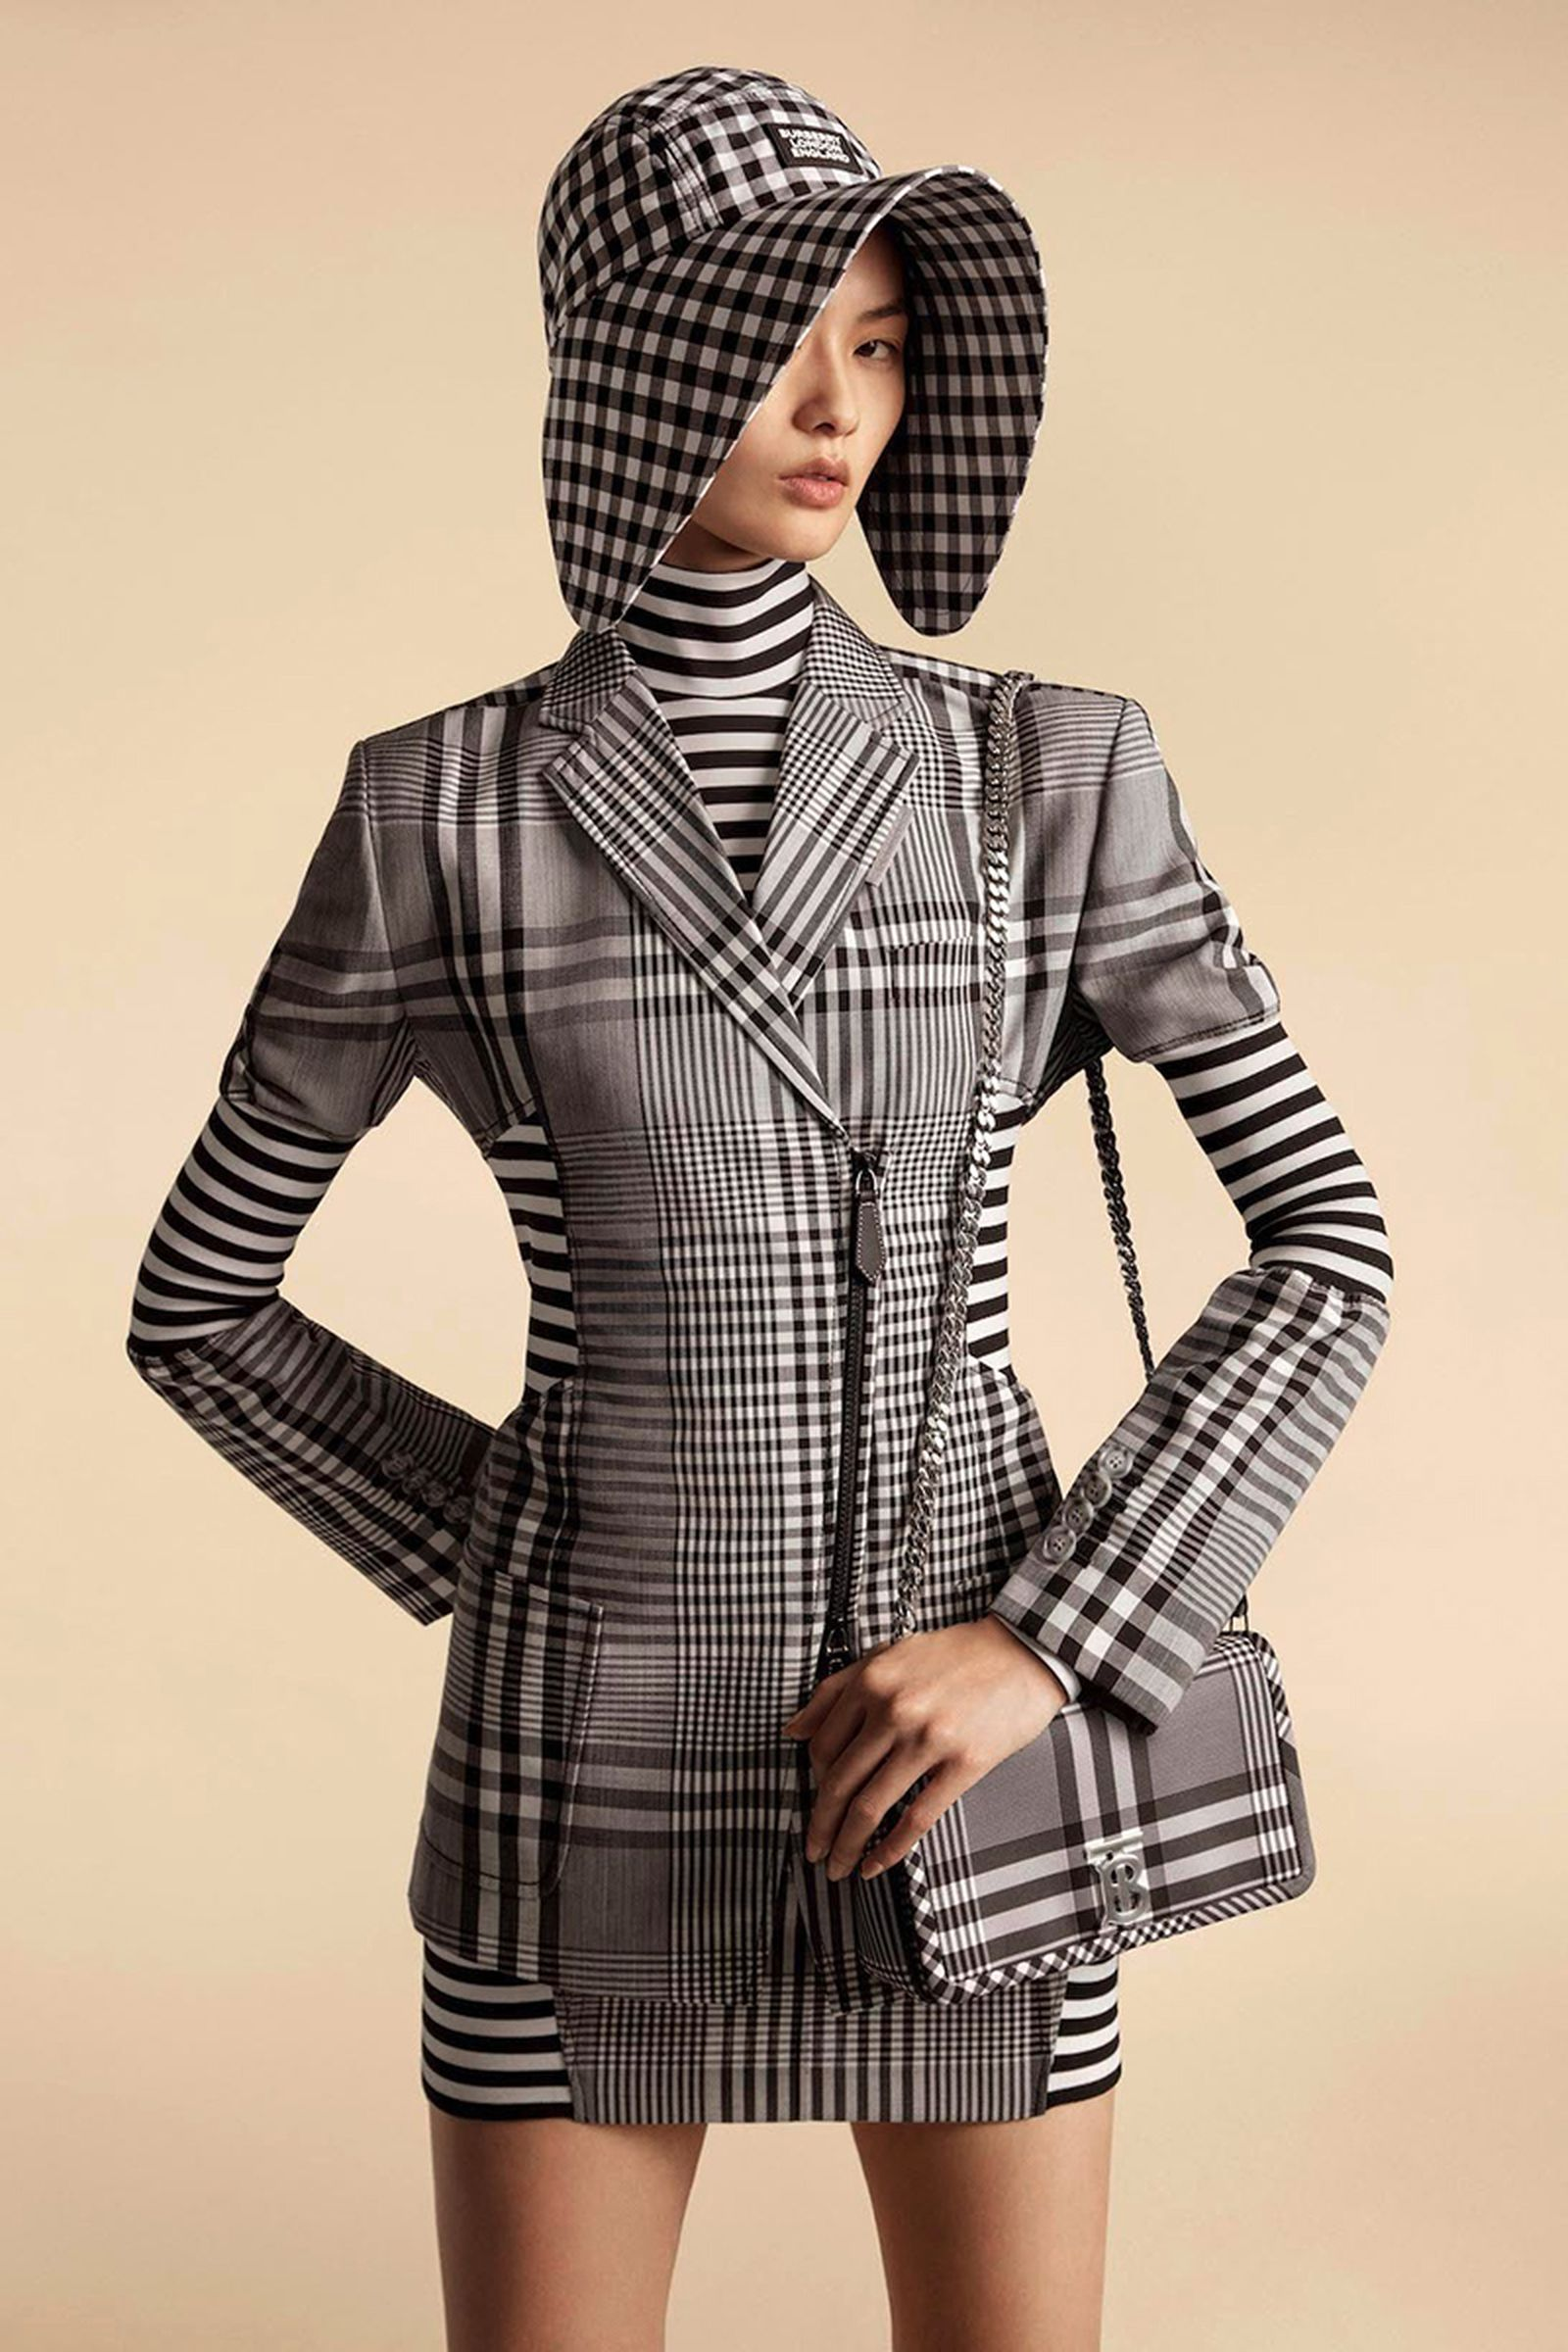 burberry-ss20-campaign-07